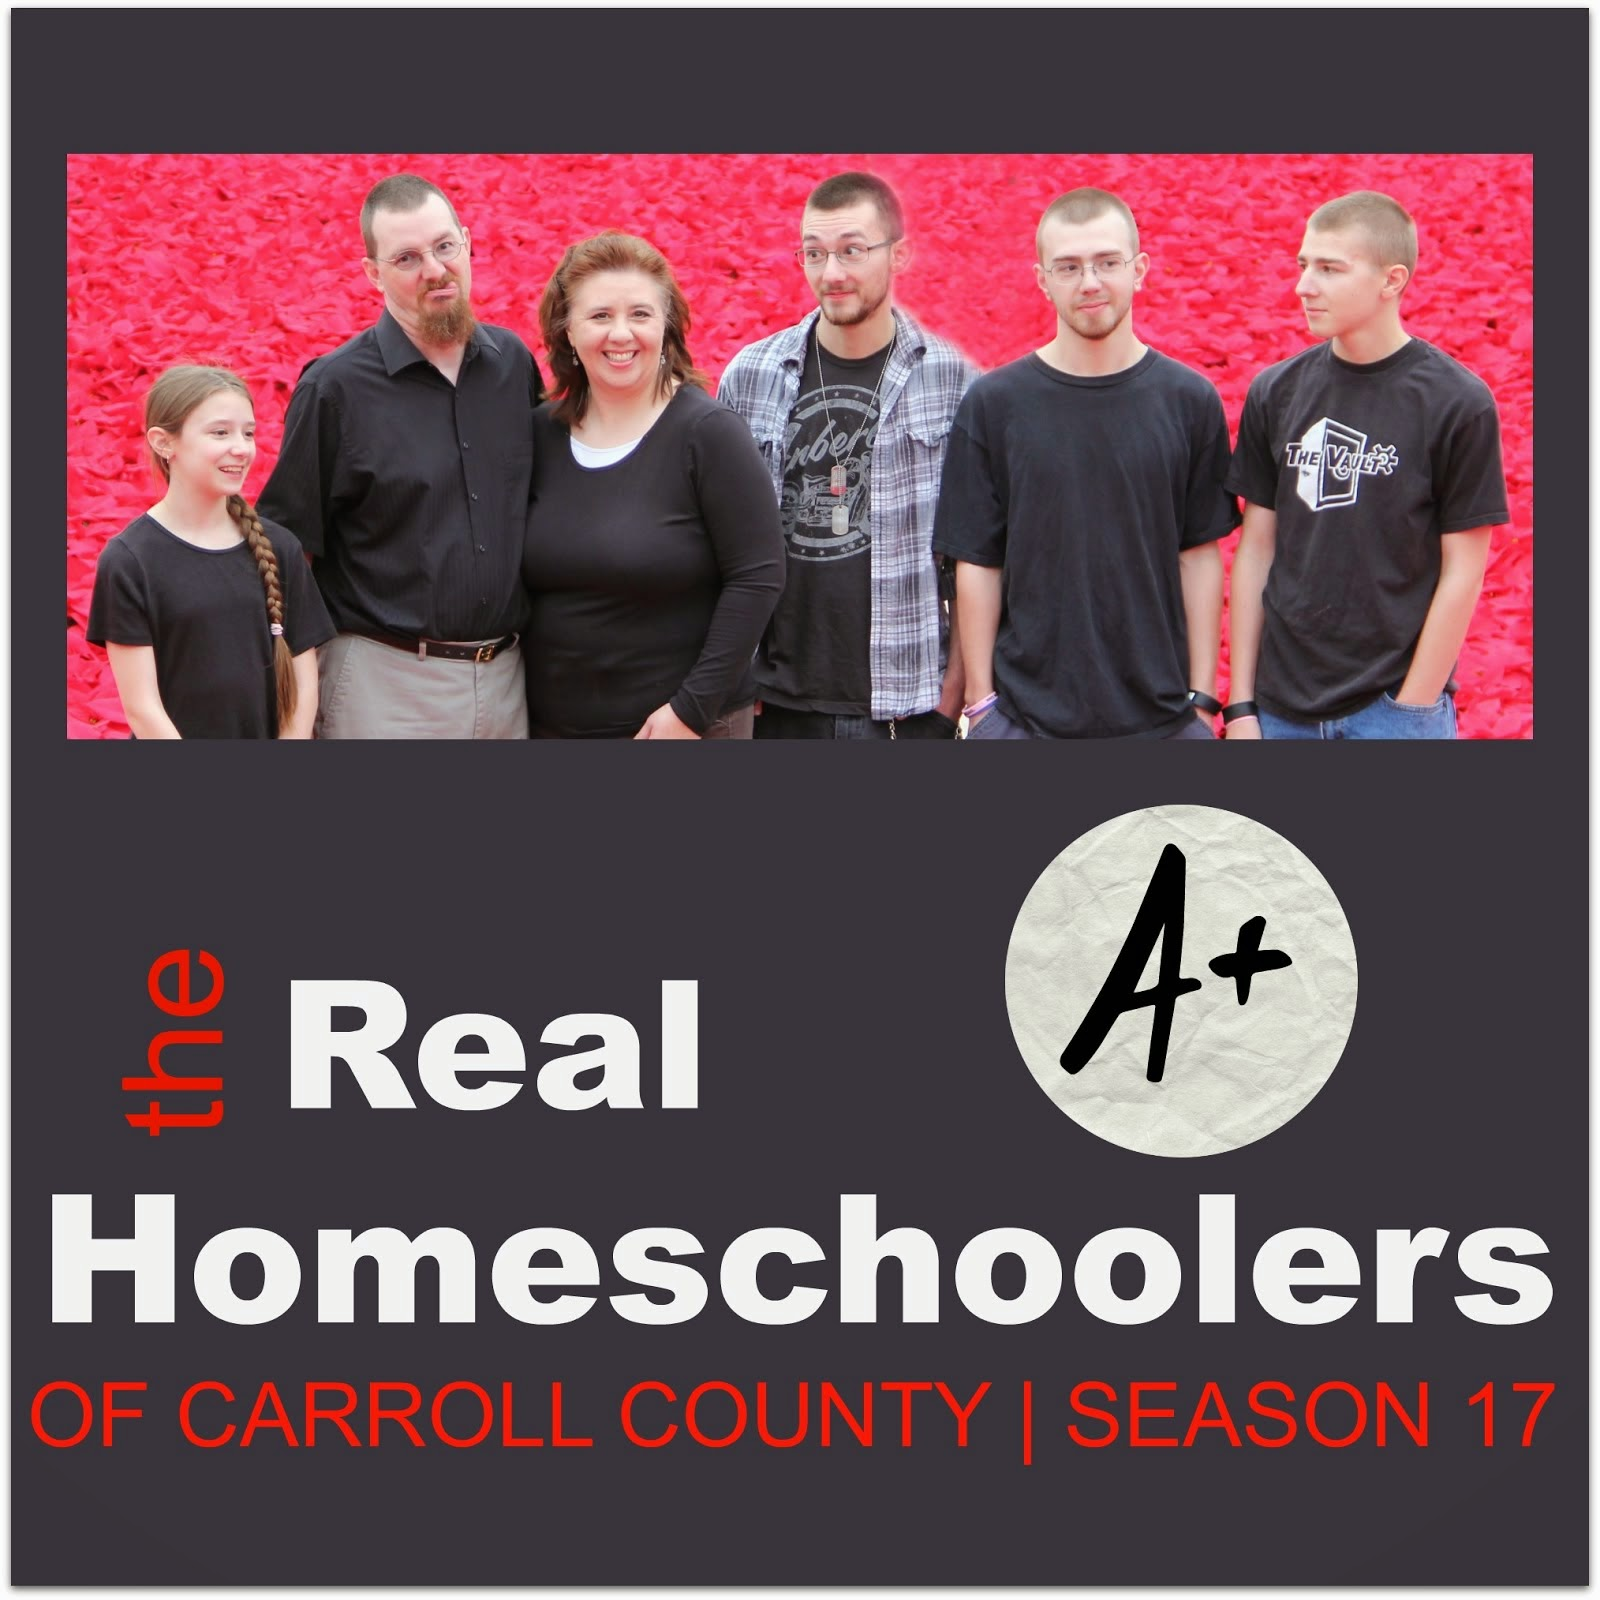 The Real Homeschoolers (Spring 2015)